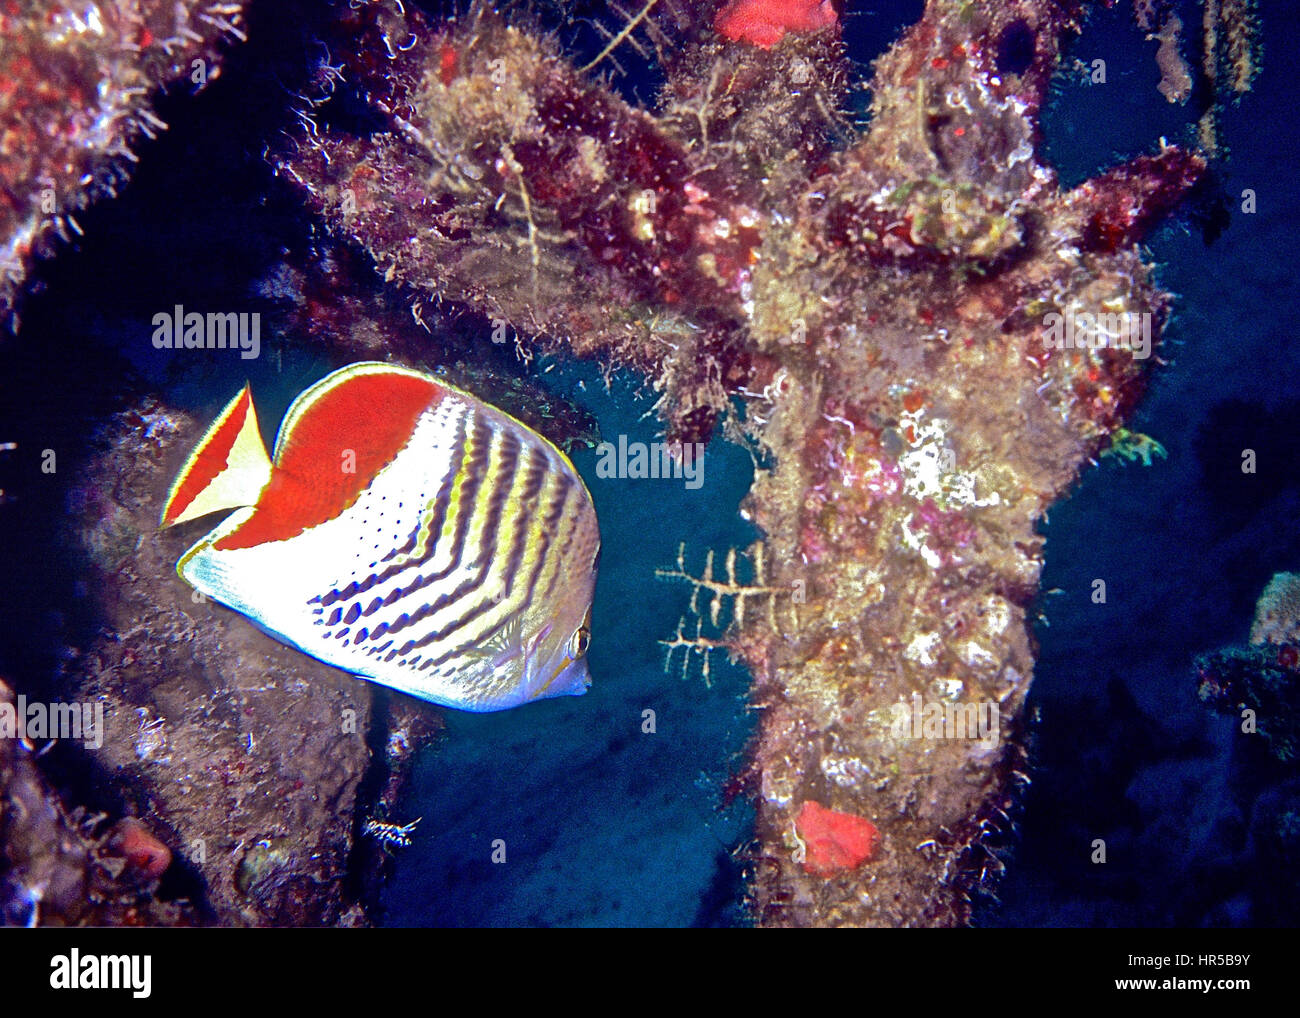 A cross-hatch butterflyfish (Chaetodon xanthurus) sheltering in a coral encrusted shipwreck. Photographed in Balinese - Stock Image